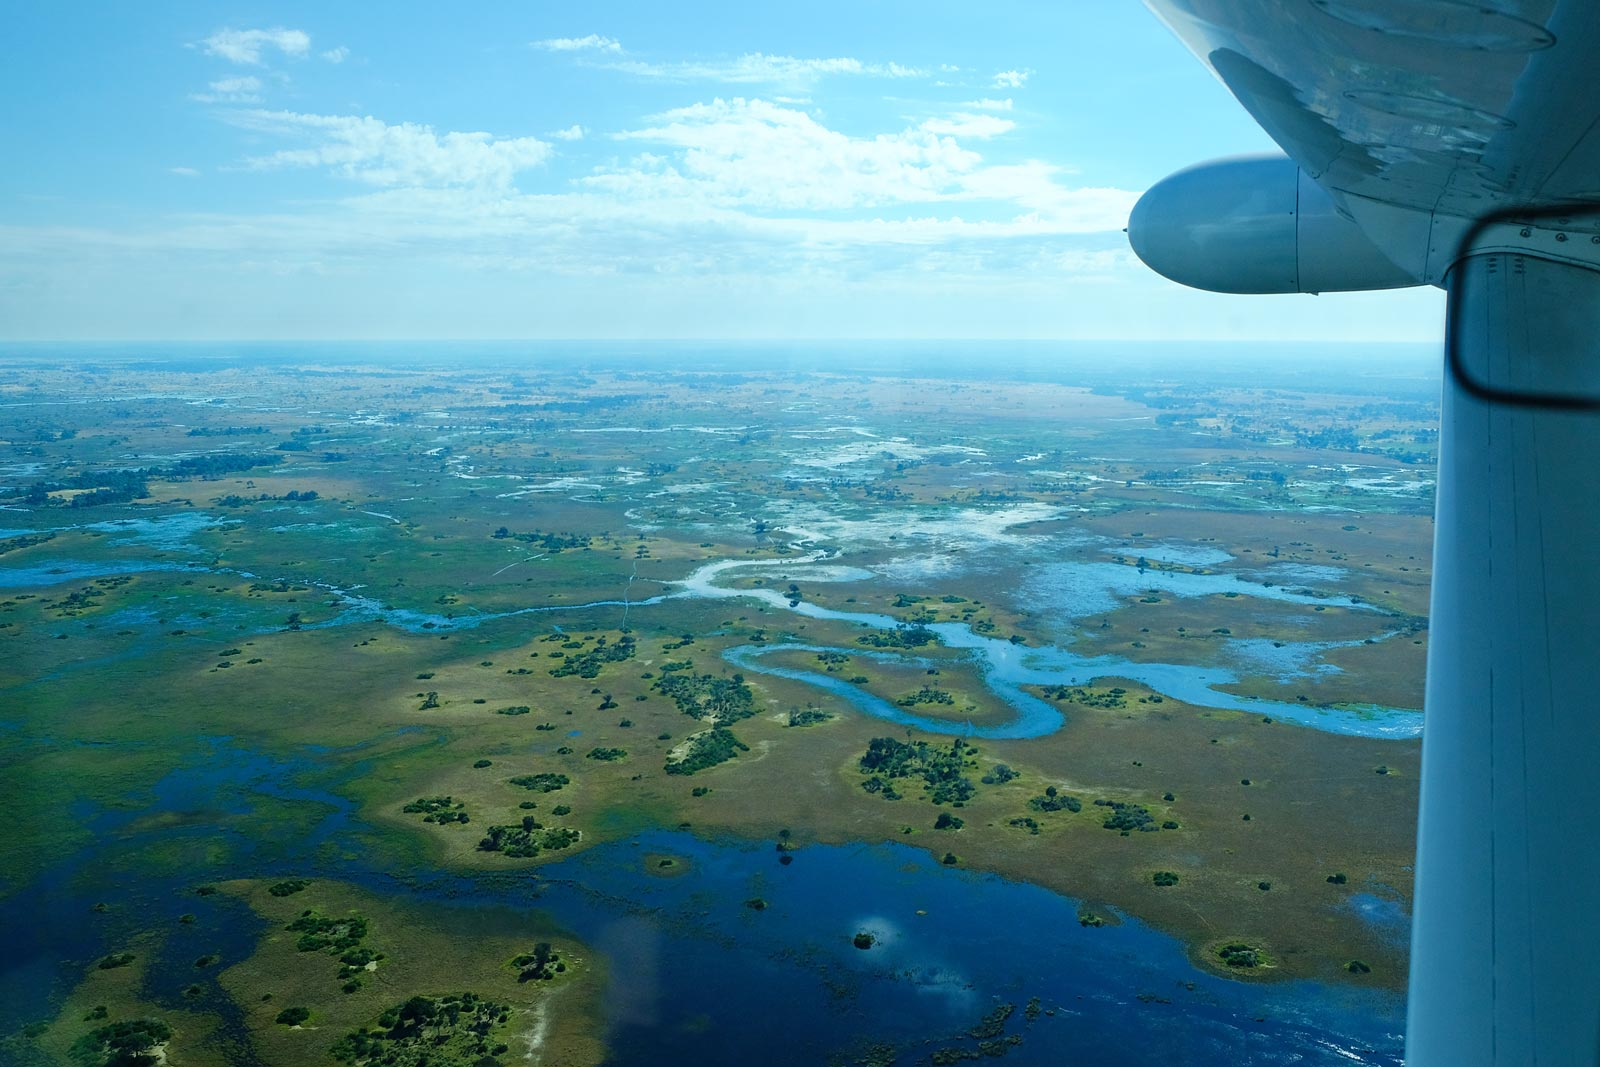 With an aircraft over Okavango Delta